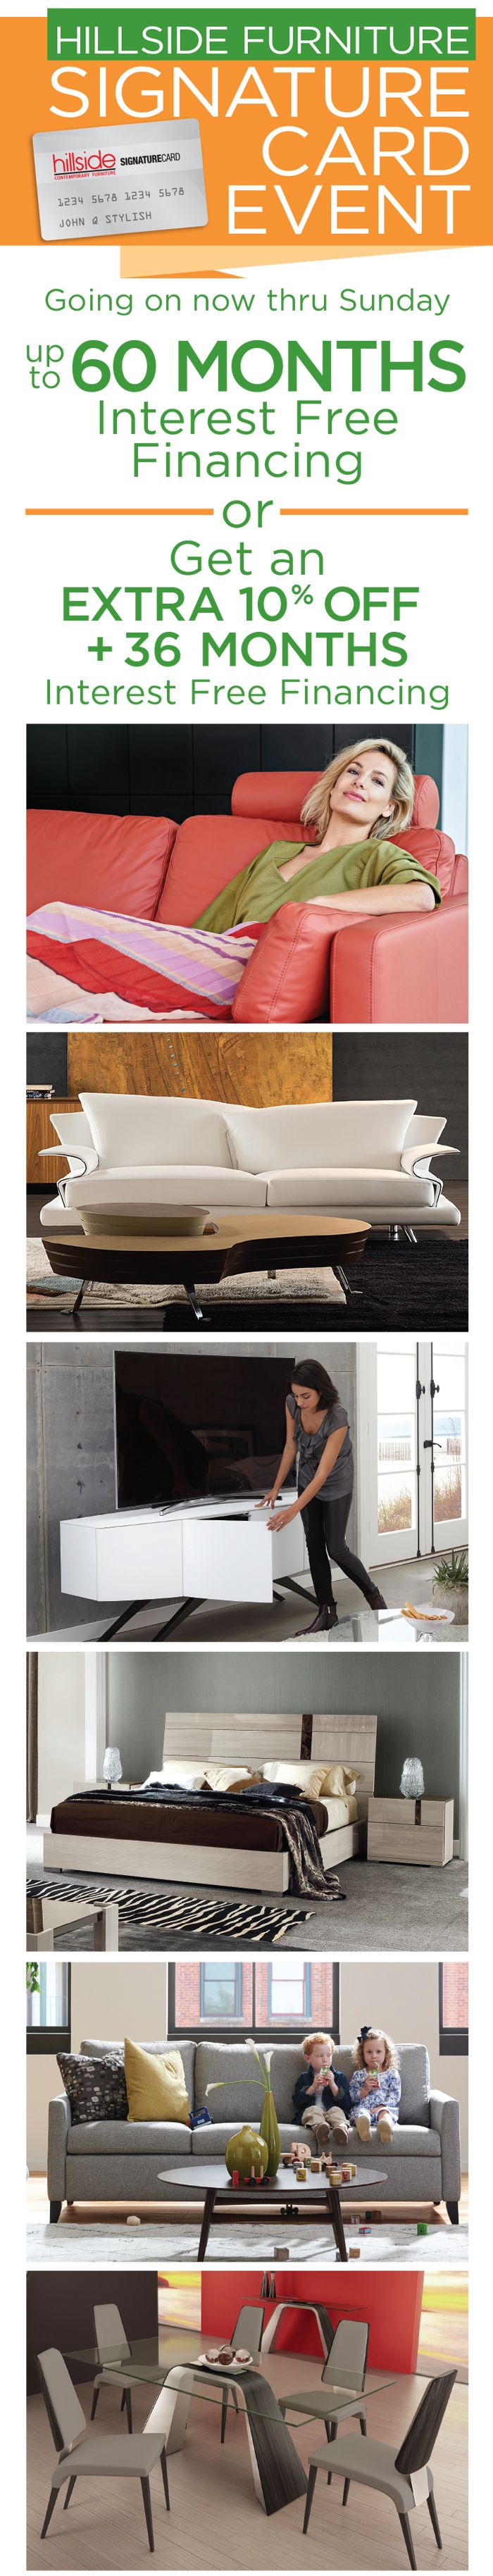 hillside contemporary furniture bloomfield hills mi. Current Sales And Events At Hillside Furniture In Bloomfield Hills. Find The Lowest Prices Best Offers On Contemporary Modern Furniture. Hills Mi M